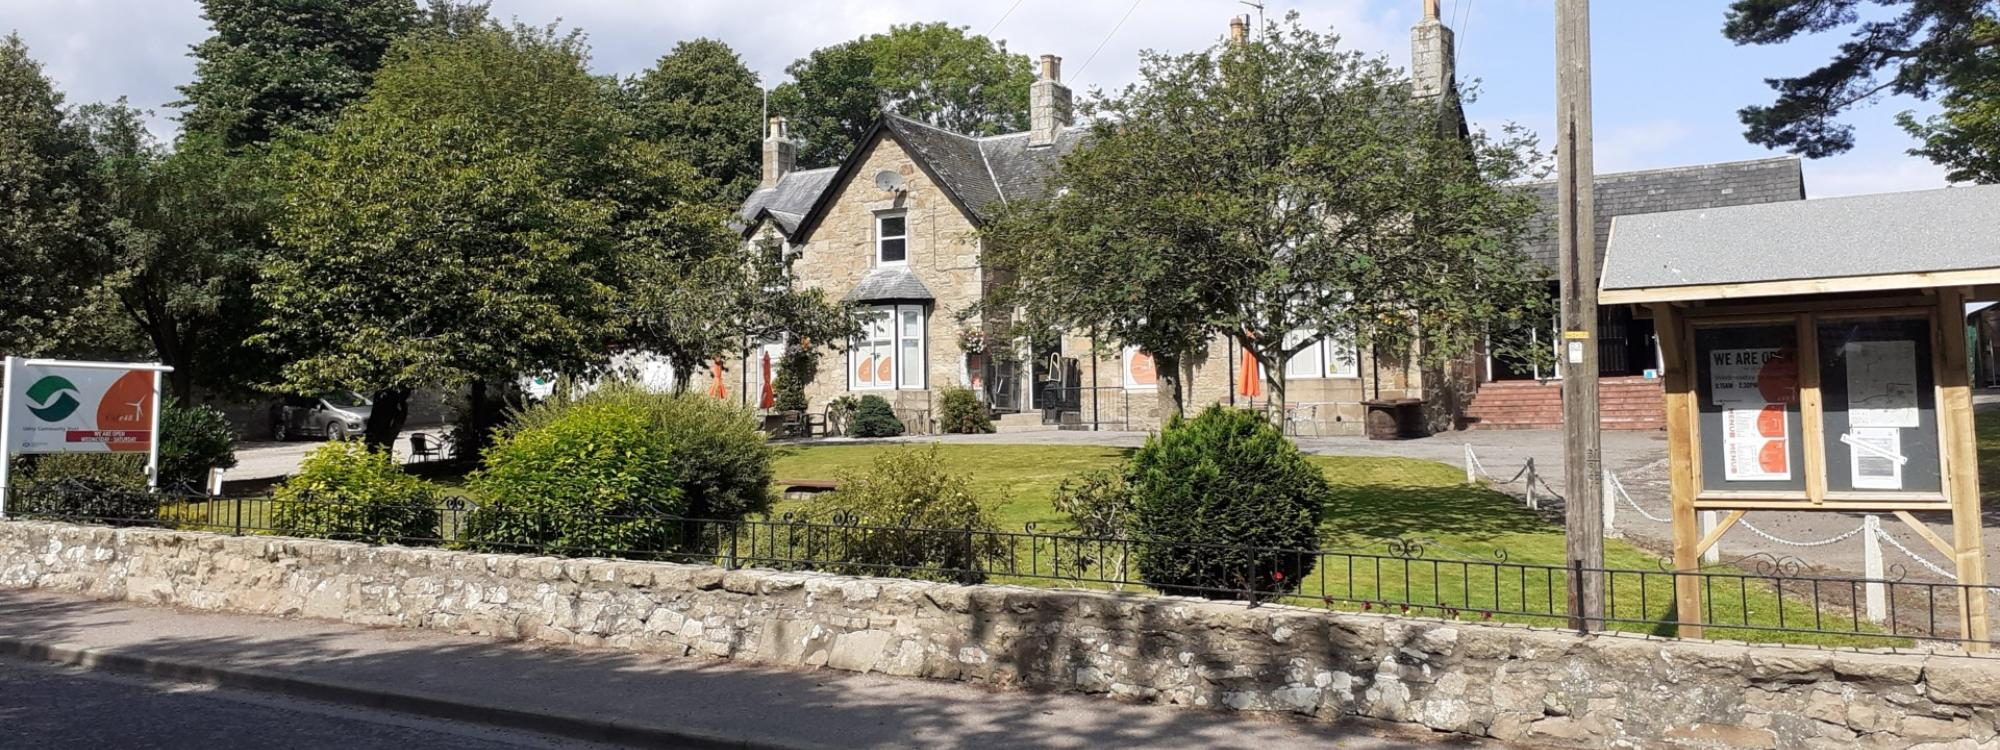 New Home For Udny Community Trust.